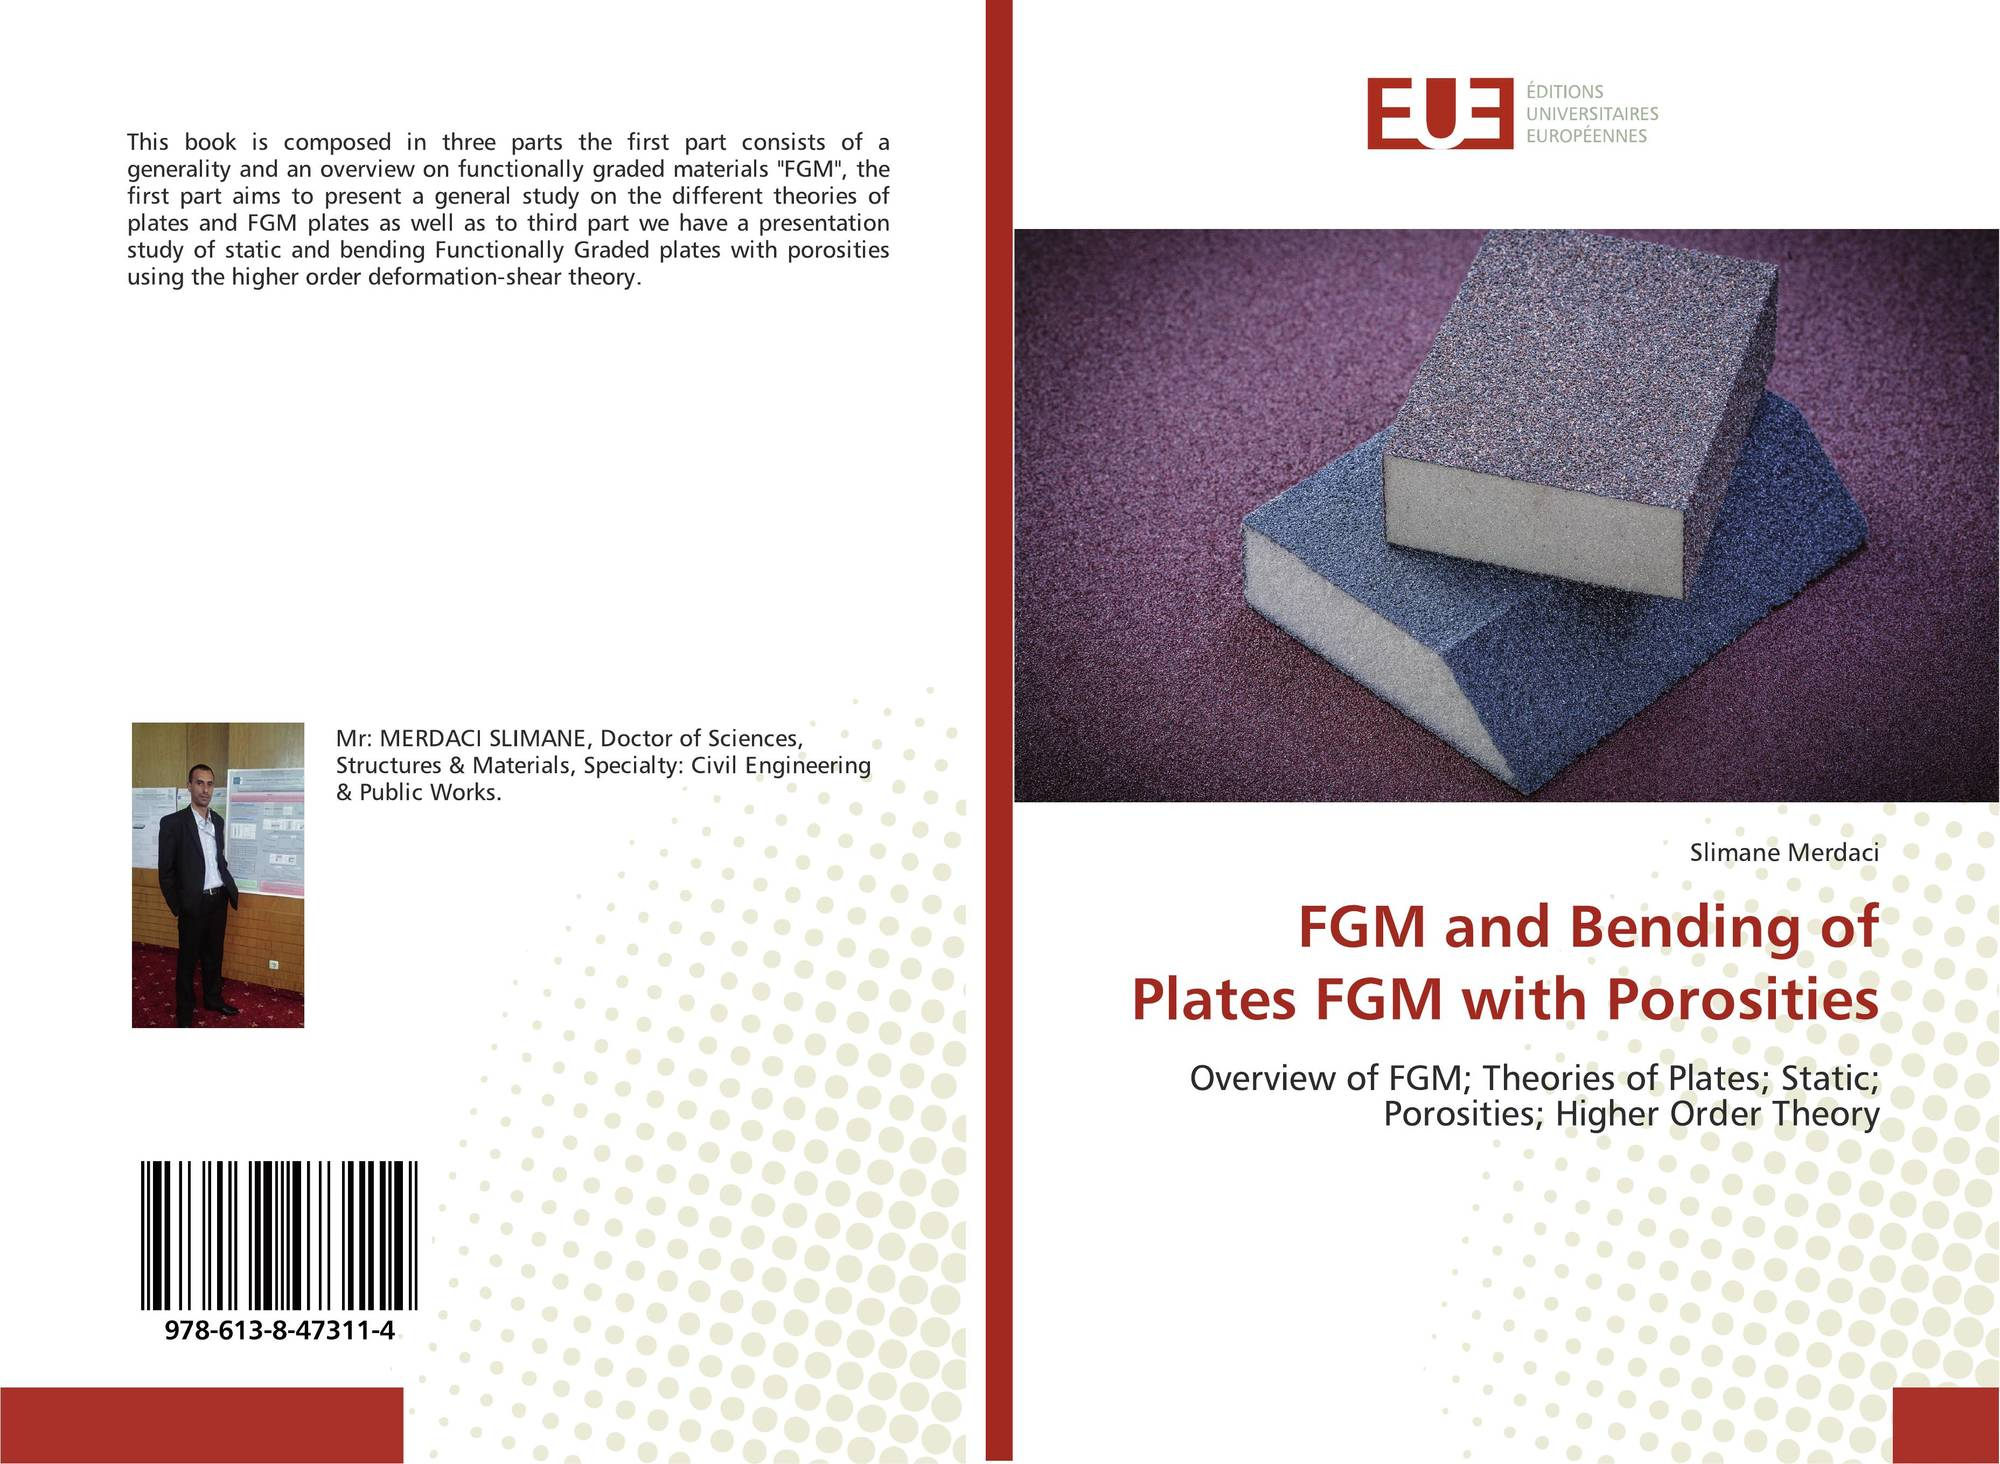 FGM and Bending of Plates FGM with Porosities, 978-613-8